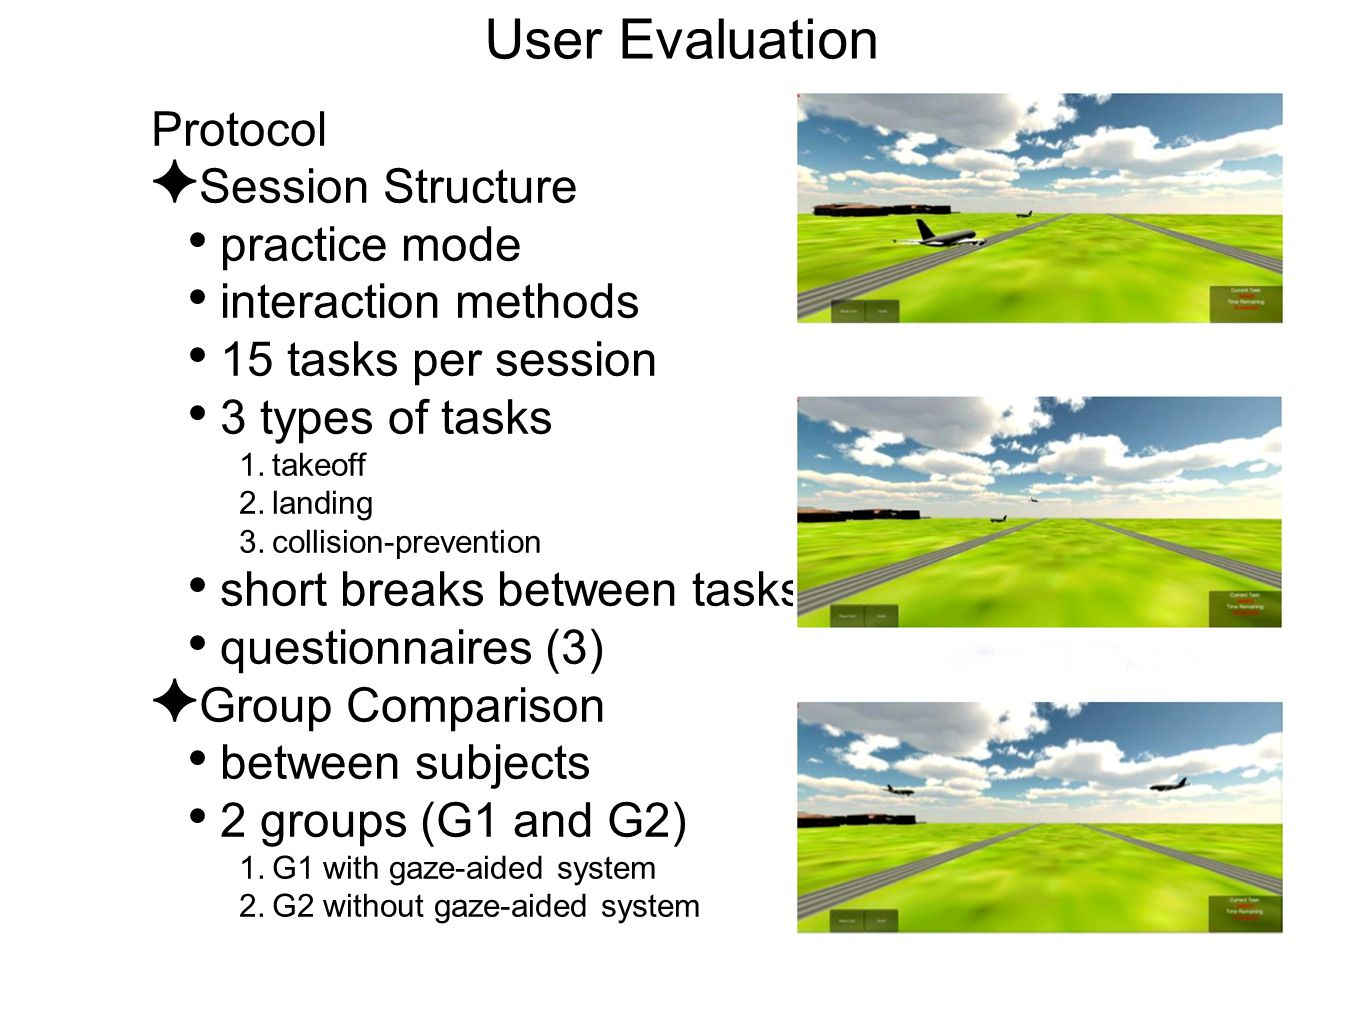 User Evaluation Protocol ✦ Session Structure practice mode interaction methods 15 tasks per session 3 types of tasks 1.takeoff 2.landing 3.collision-prevention short breaks between tasks questionnaires (3) ✦ Group Comparison between subjects 2 groups (G1 and G2) 1.G1 with gaze-aided system 2.G2 without gaze-aided system